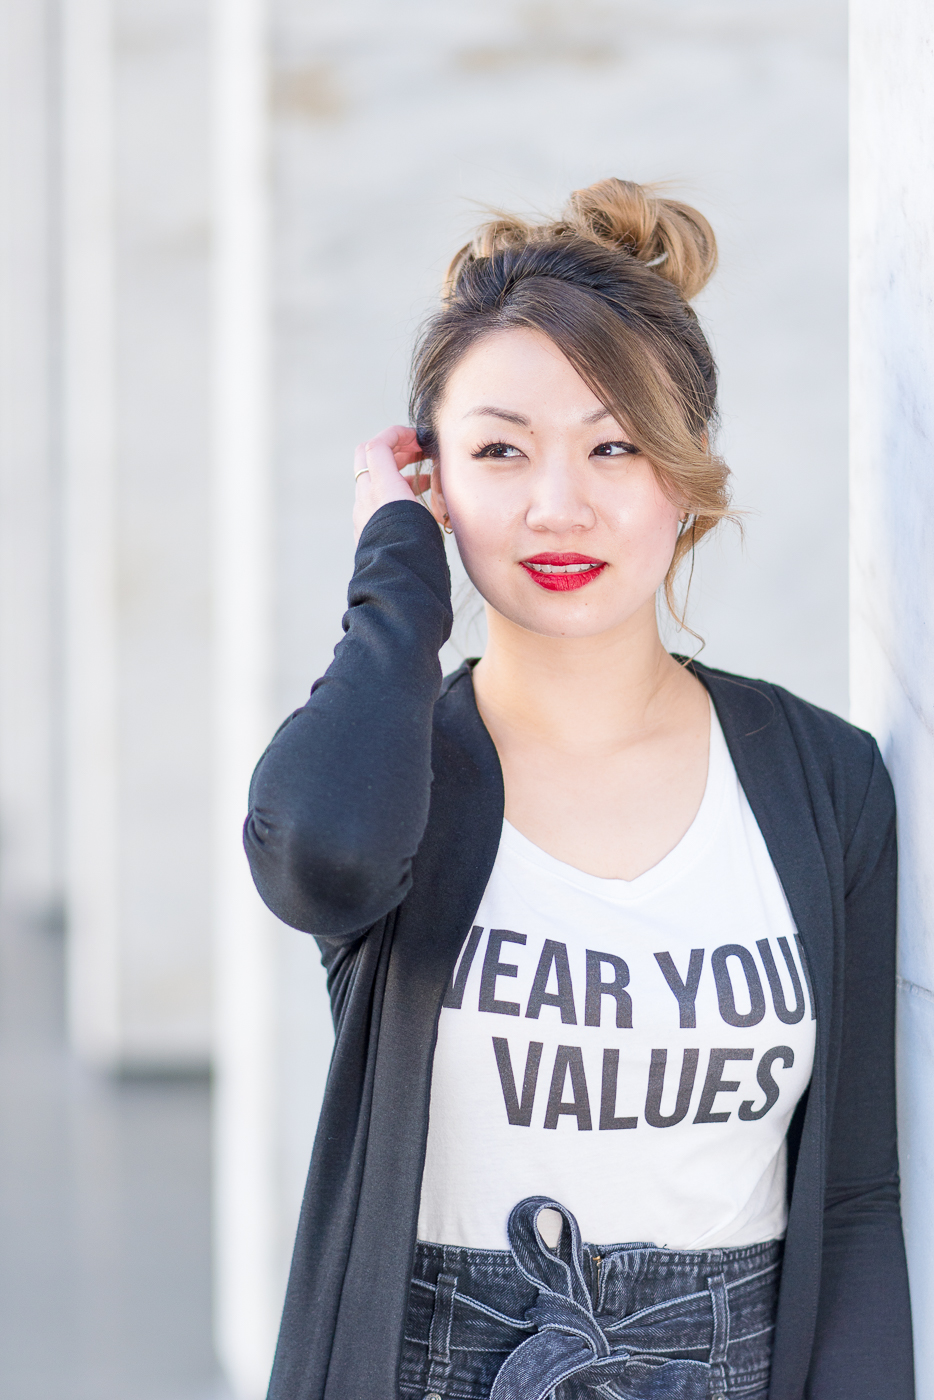 Farm Fresh Clothing x Remake Wear Your Values T-Shirt | The Chic Diary